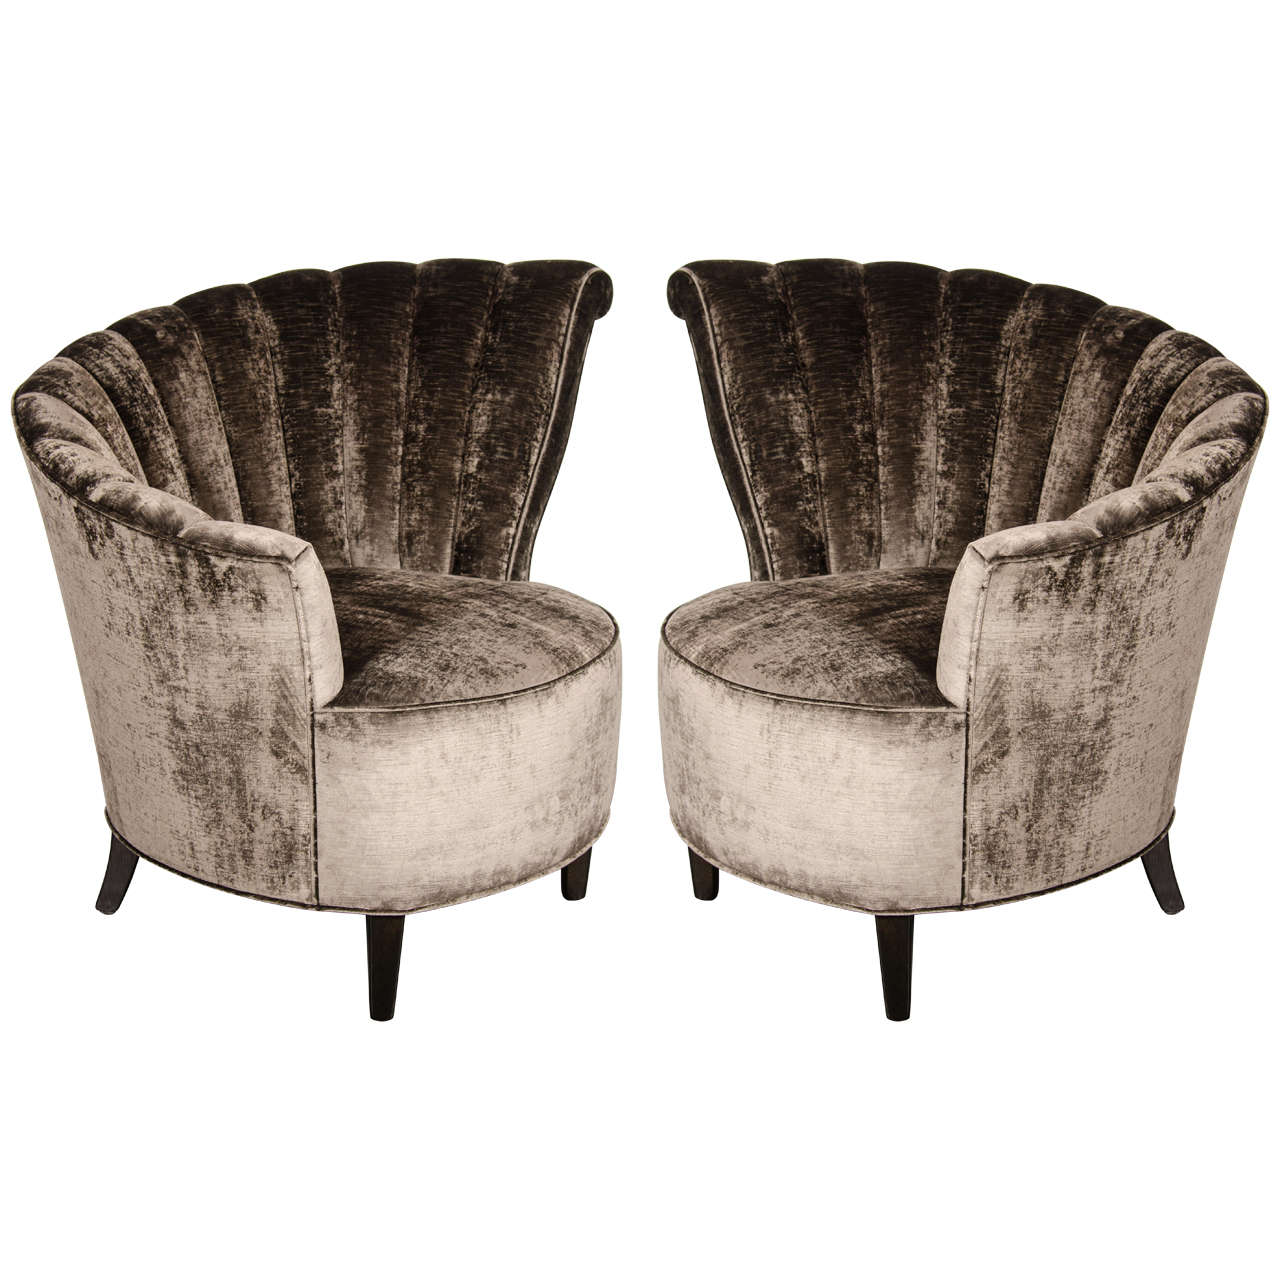 Glamorous Pair of 1940's Asymmetrical Fan Back Chairs in ...